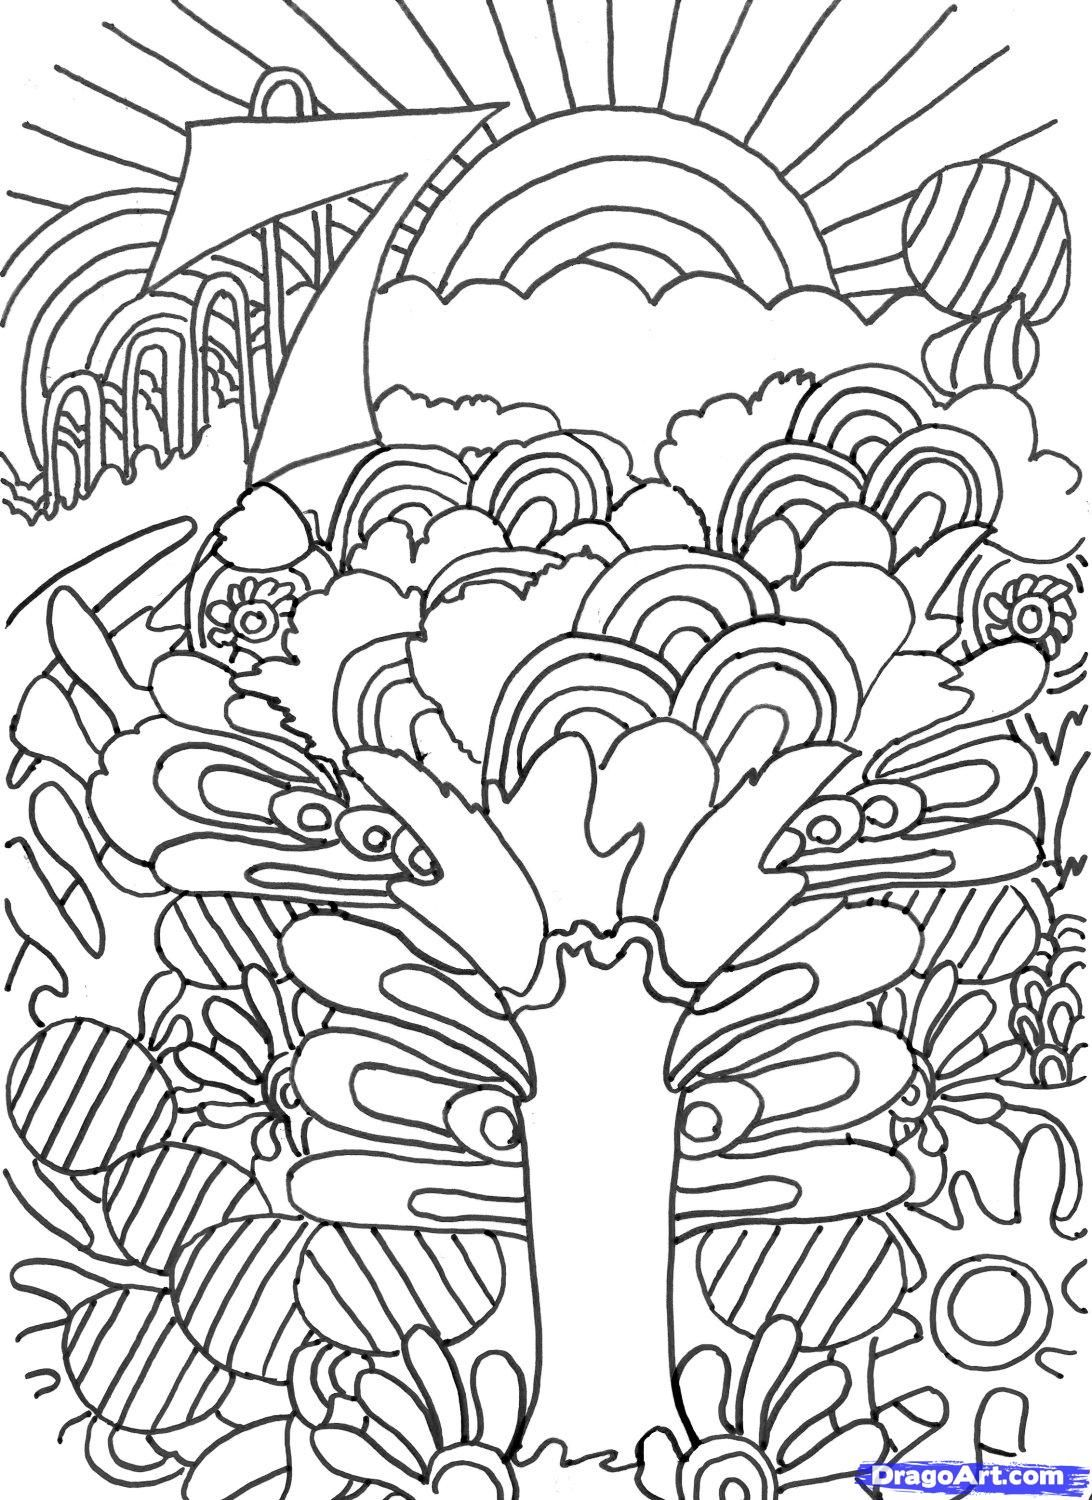 Trippy Coloring Pages | how to draw trippy art, trippy art step 6 ...